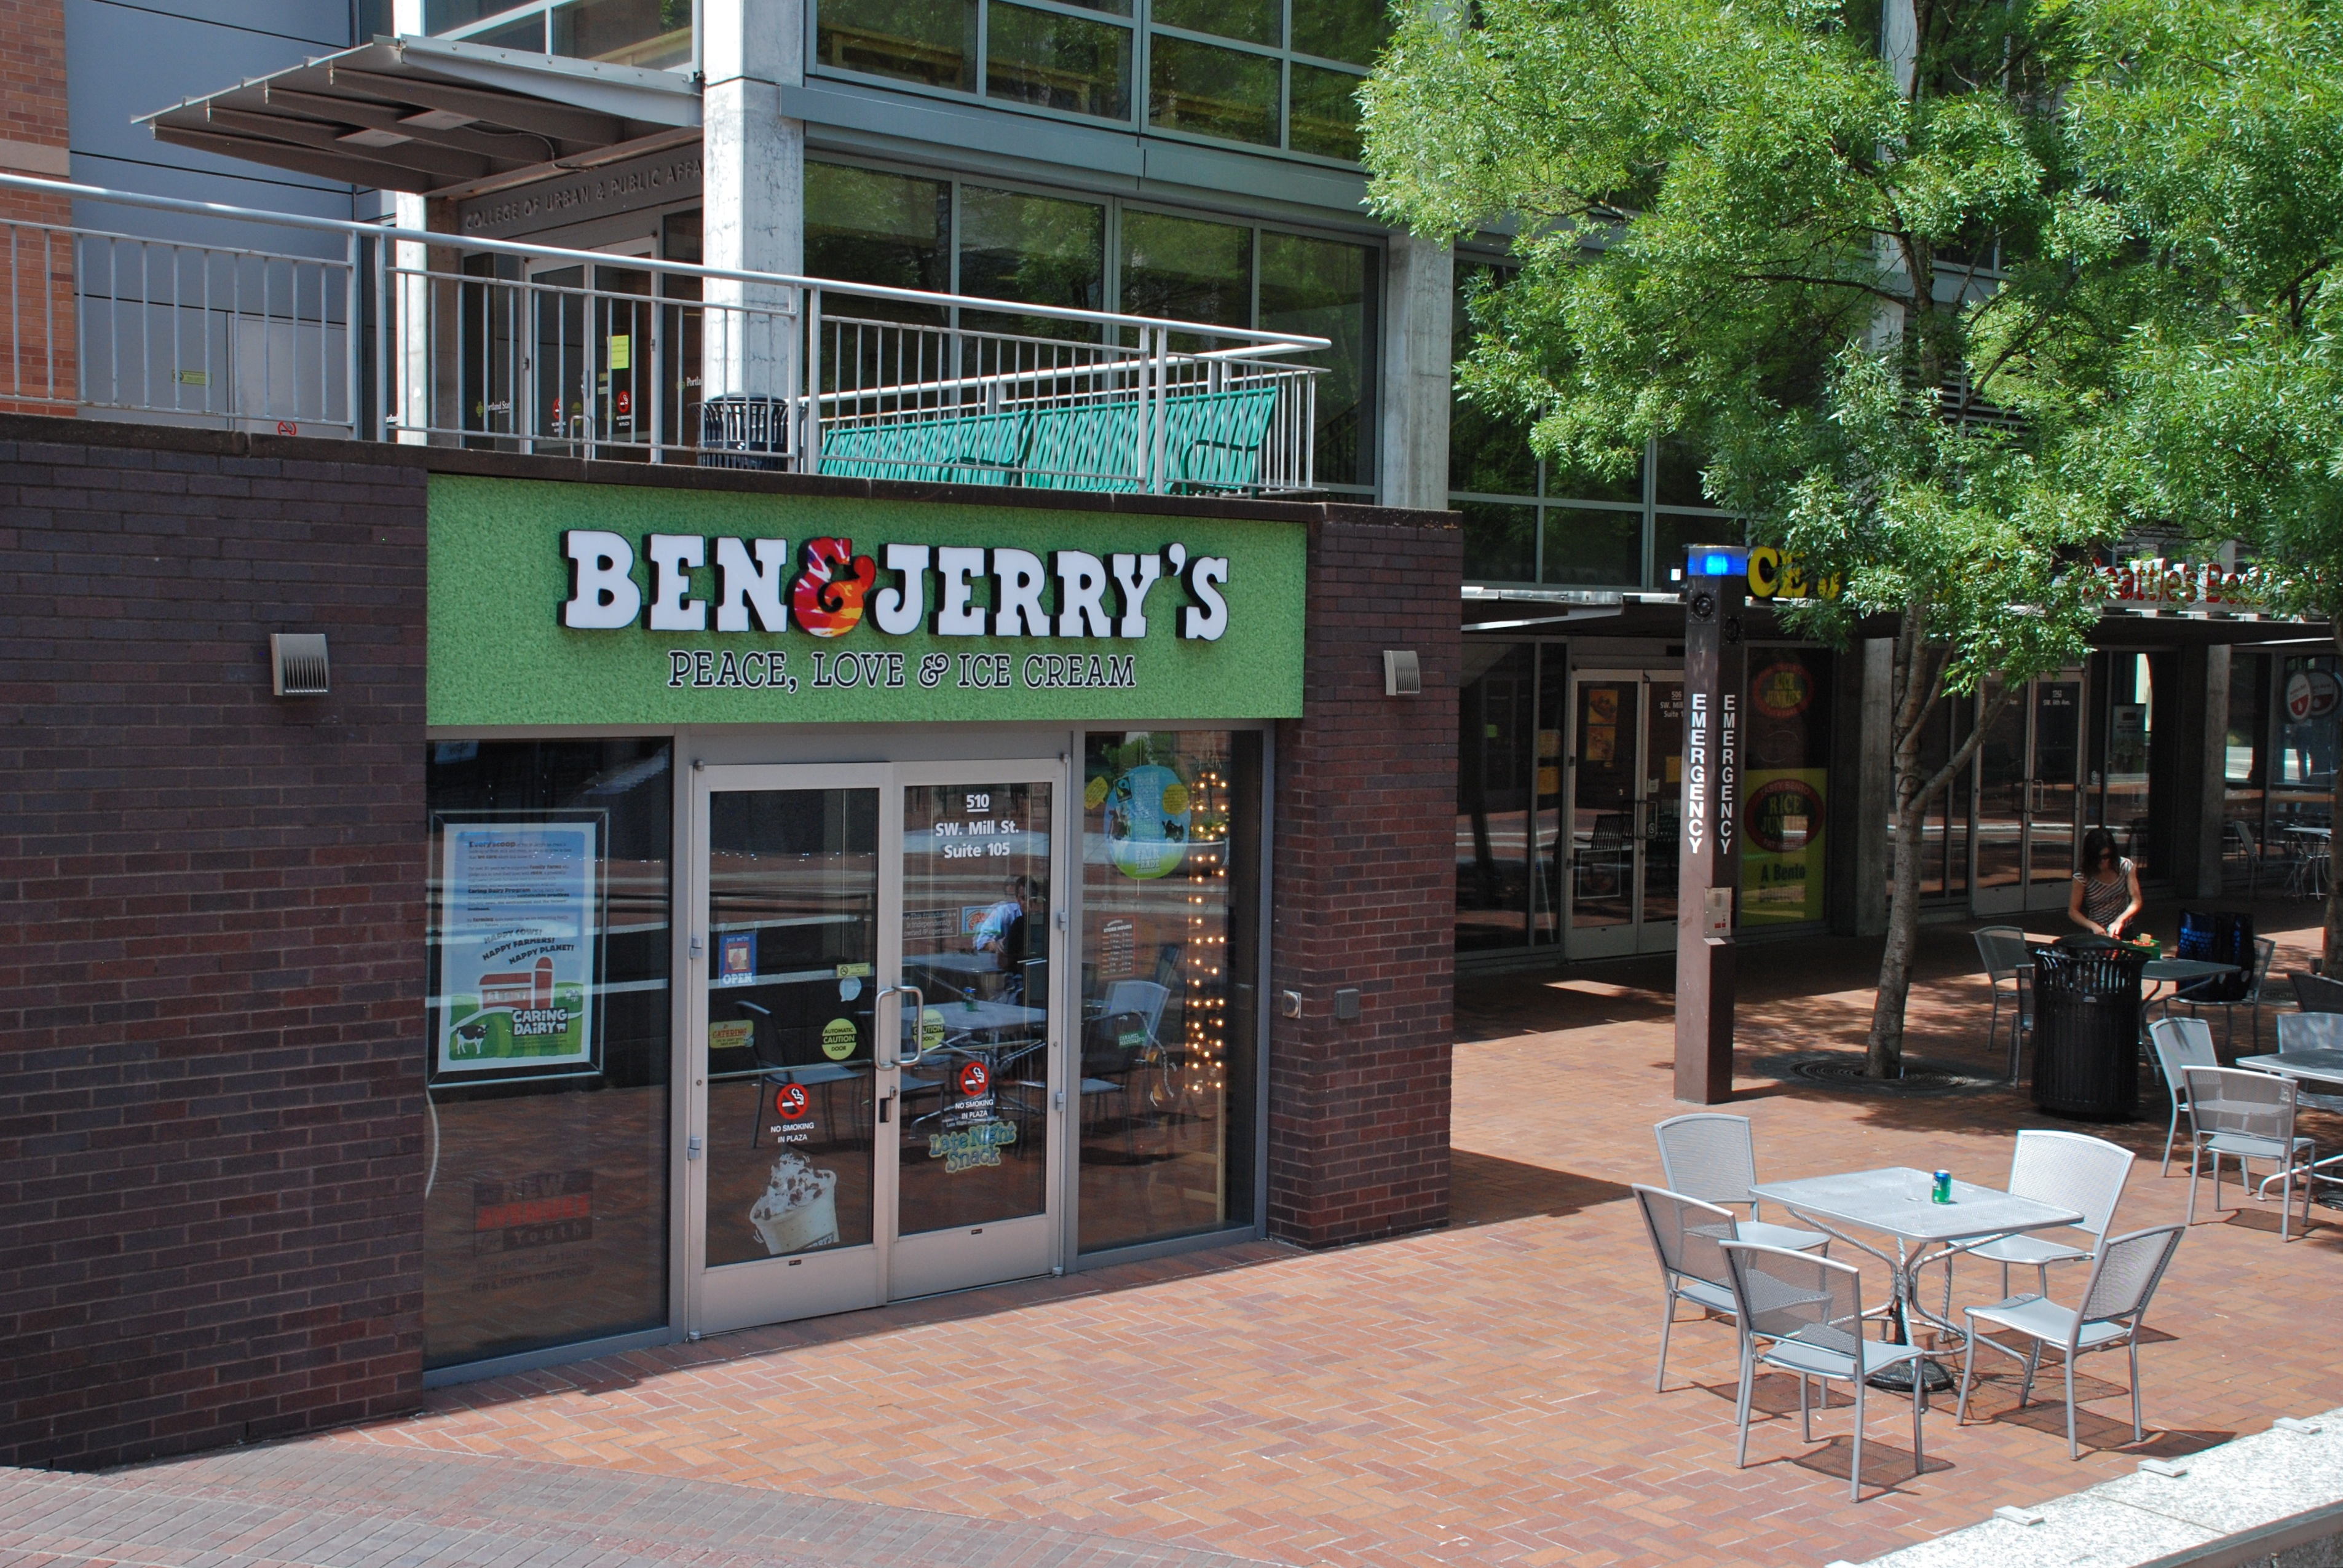 Below is a list of Ben & Jerry's mall/outlet store locations in Palo Alto, California - including store address, hours and phone numbers. There are 5 Ben & Jerry's mall stores in California, with 0 locations in or near Palo Alto (within miles).